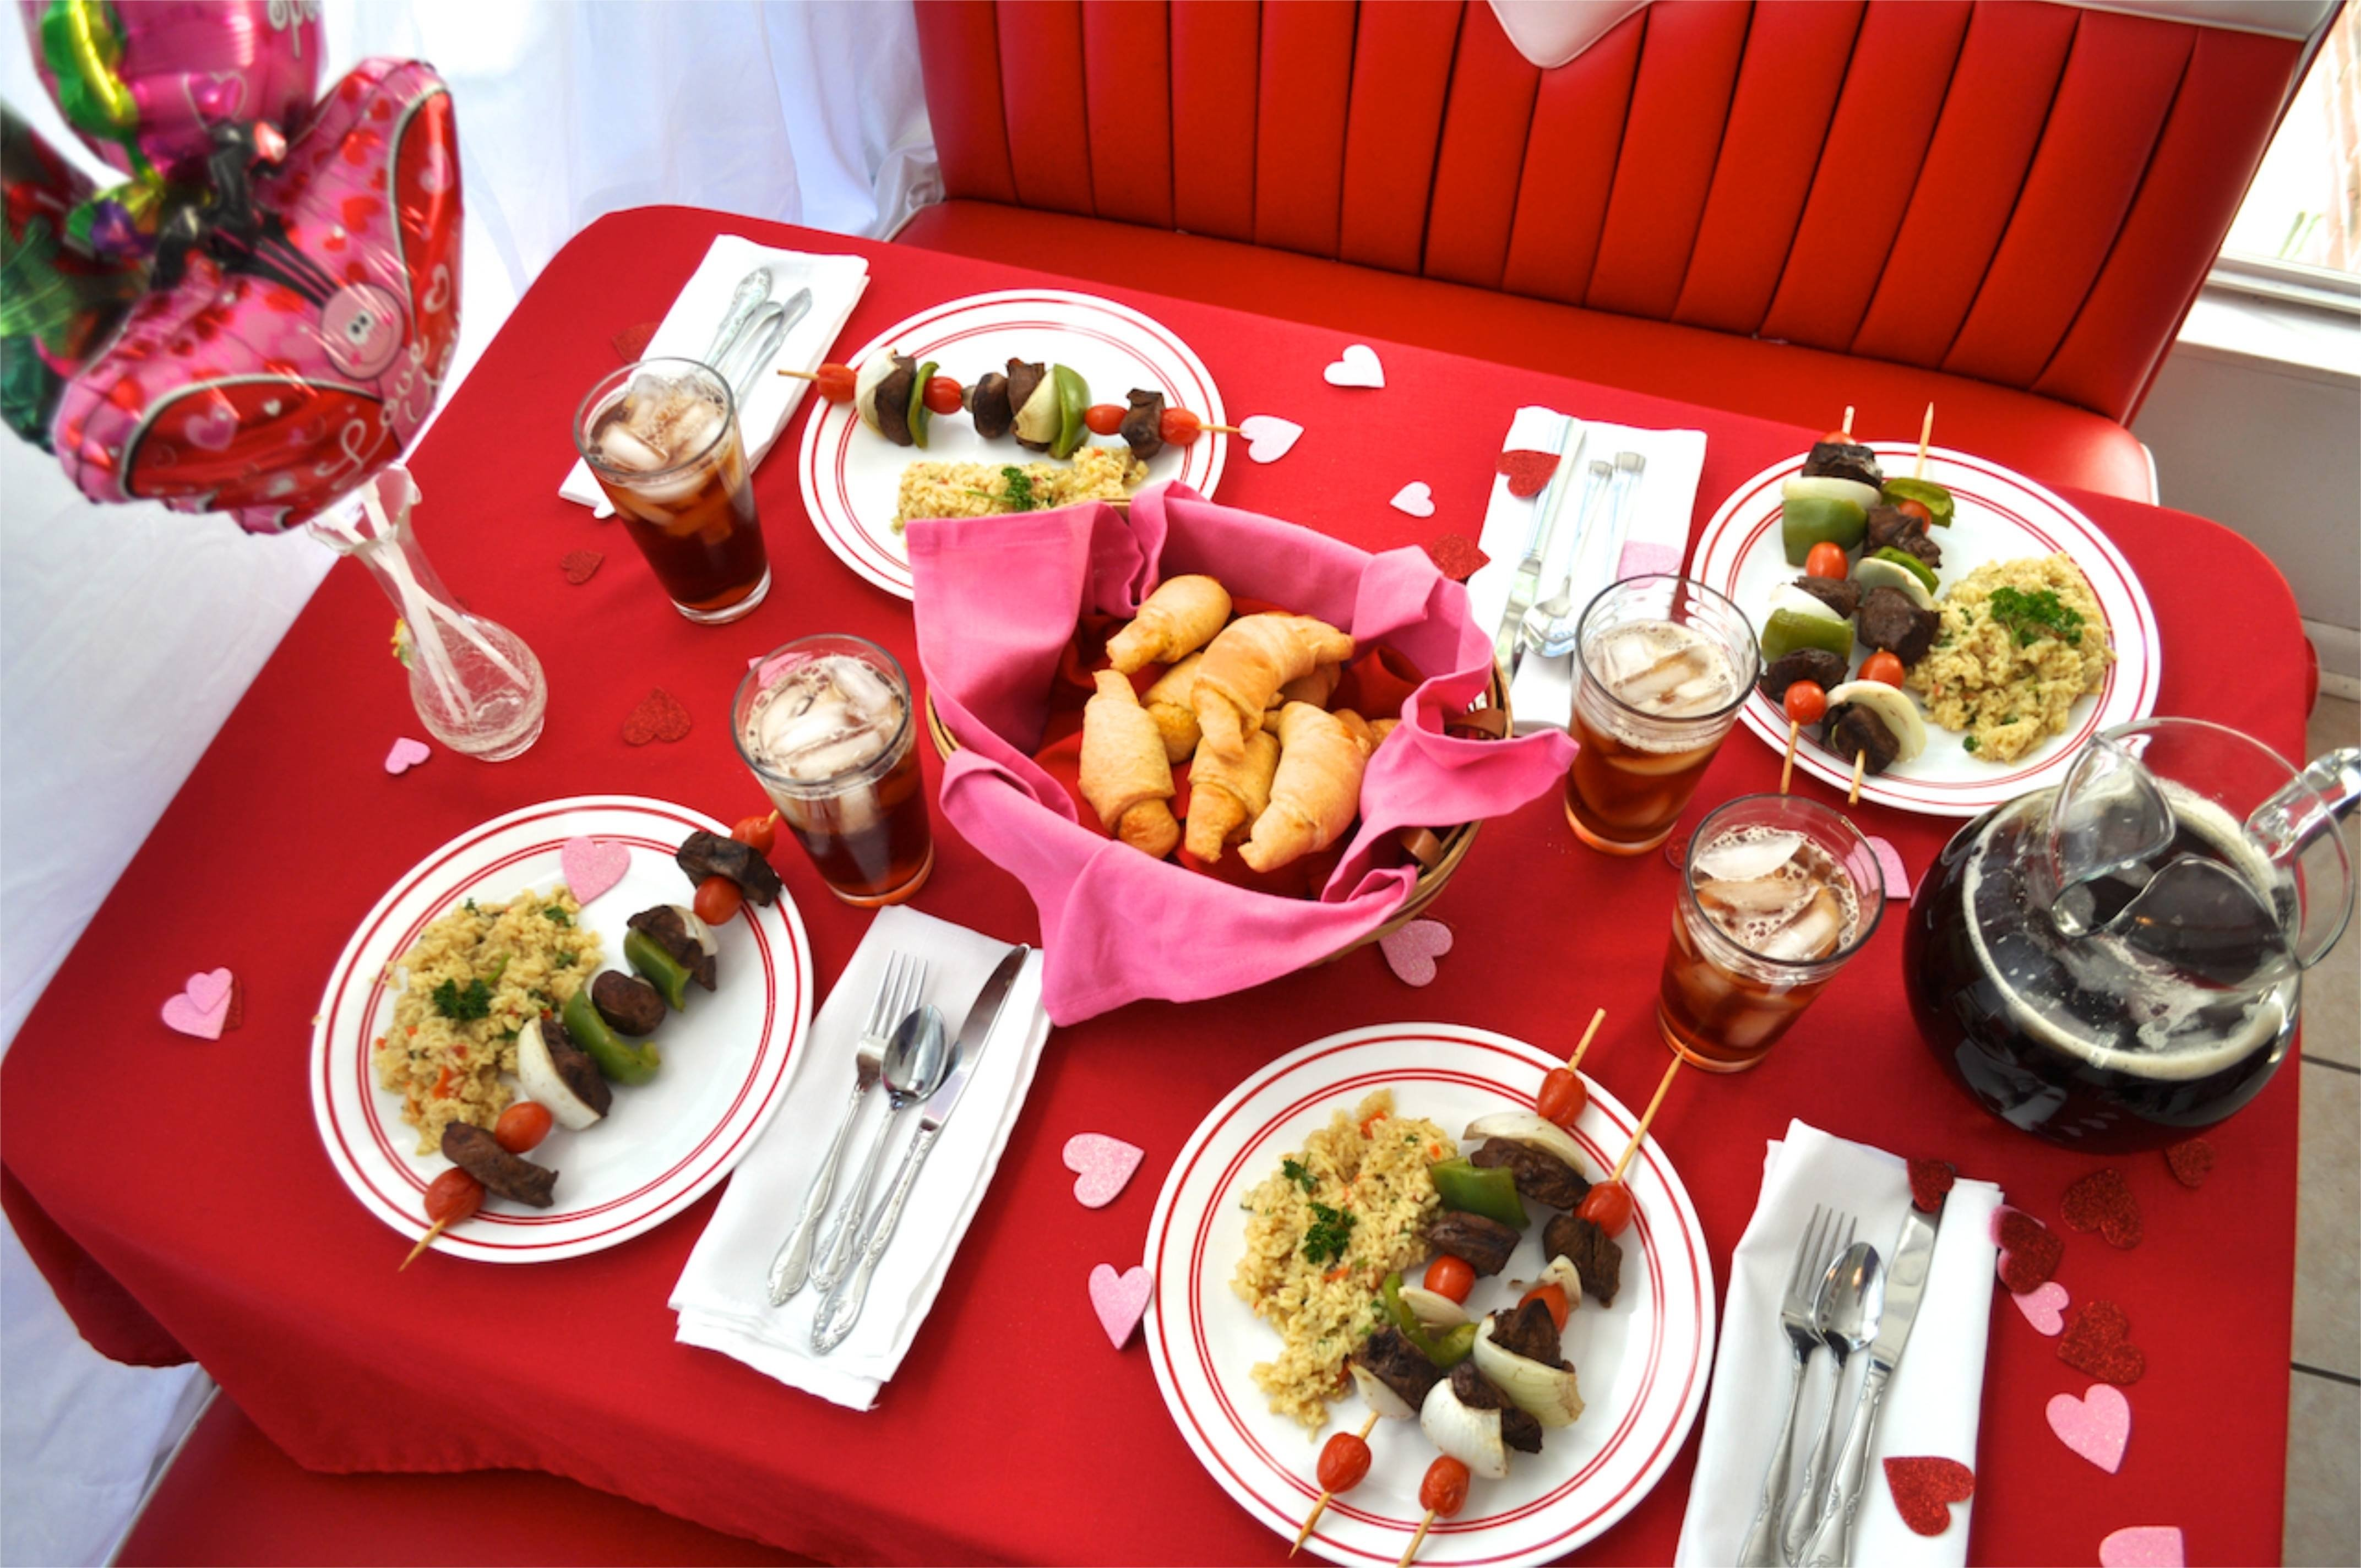 10 Pretty Food Ideas For Valentines Day valentines recipes make it special make it fun southern plate 1 2020